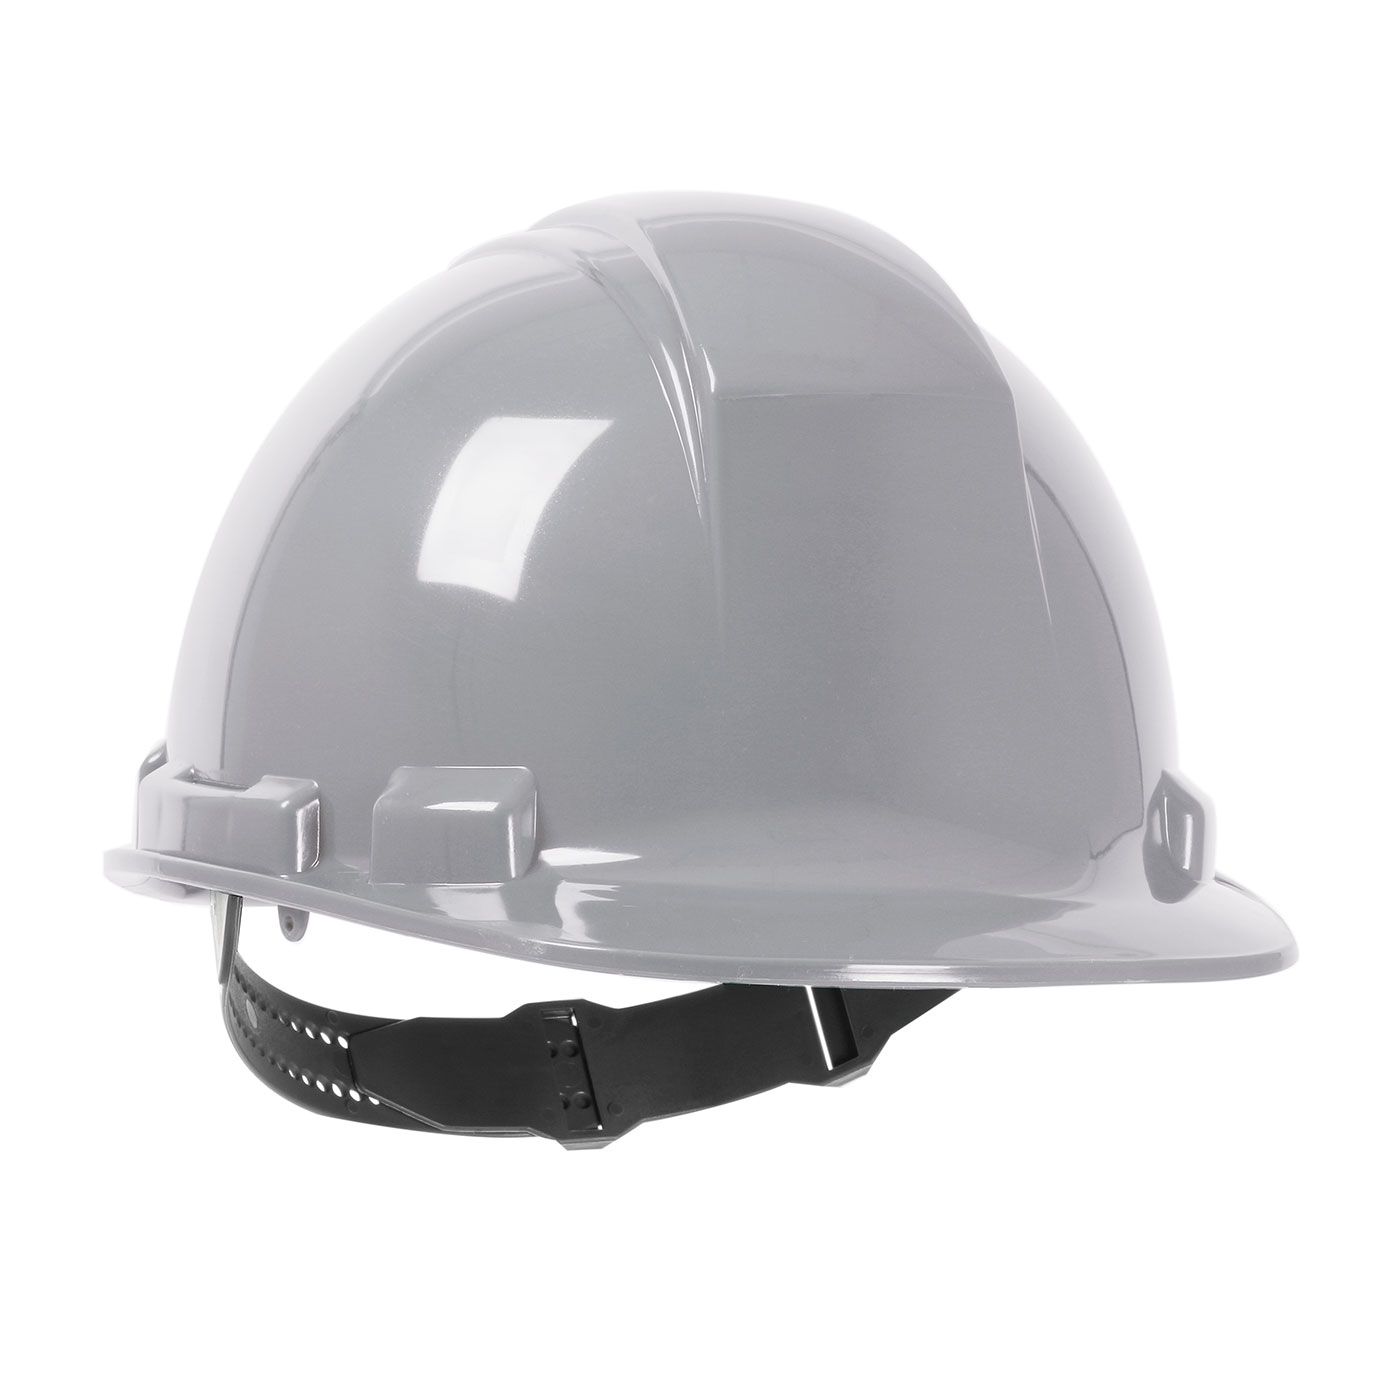 280-HP241 PIP® Dynamic Whistler™ Cap Style Hard Hat with HDPE Shell, 4-Point Textile Suspension and Pin-Lock Adjustment - Gray